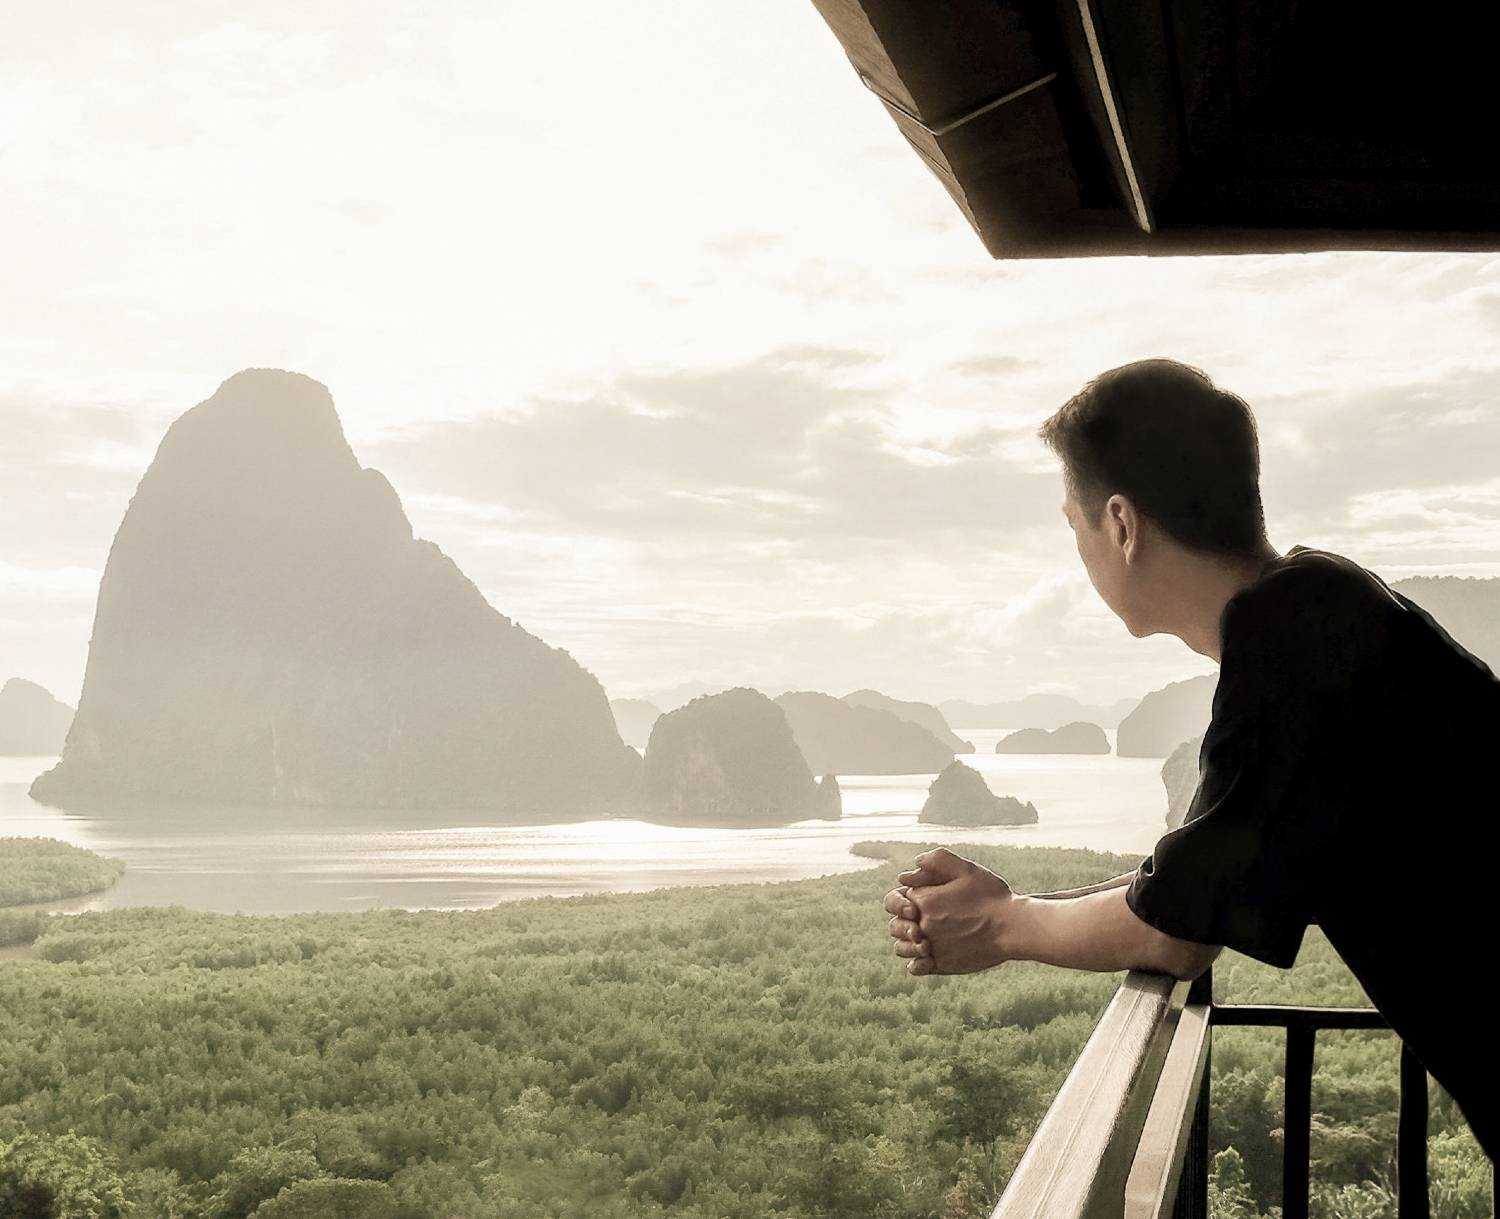 The bay of Phang Nga in the southwest of Thailand